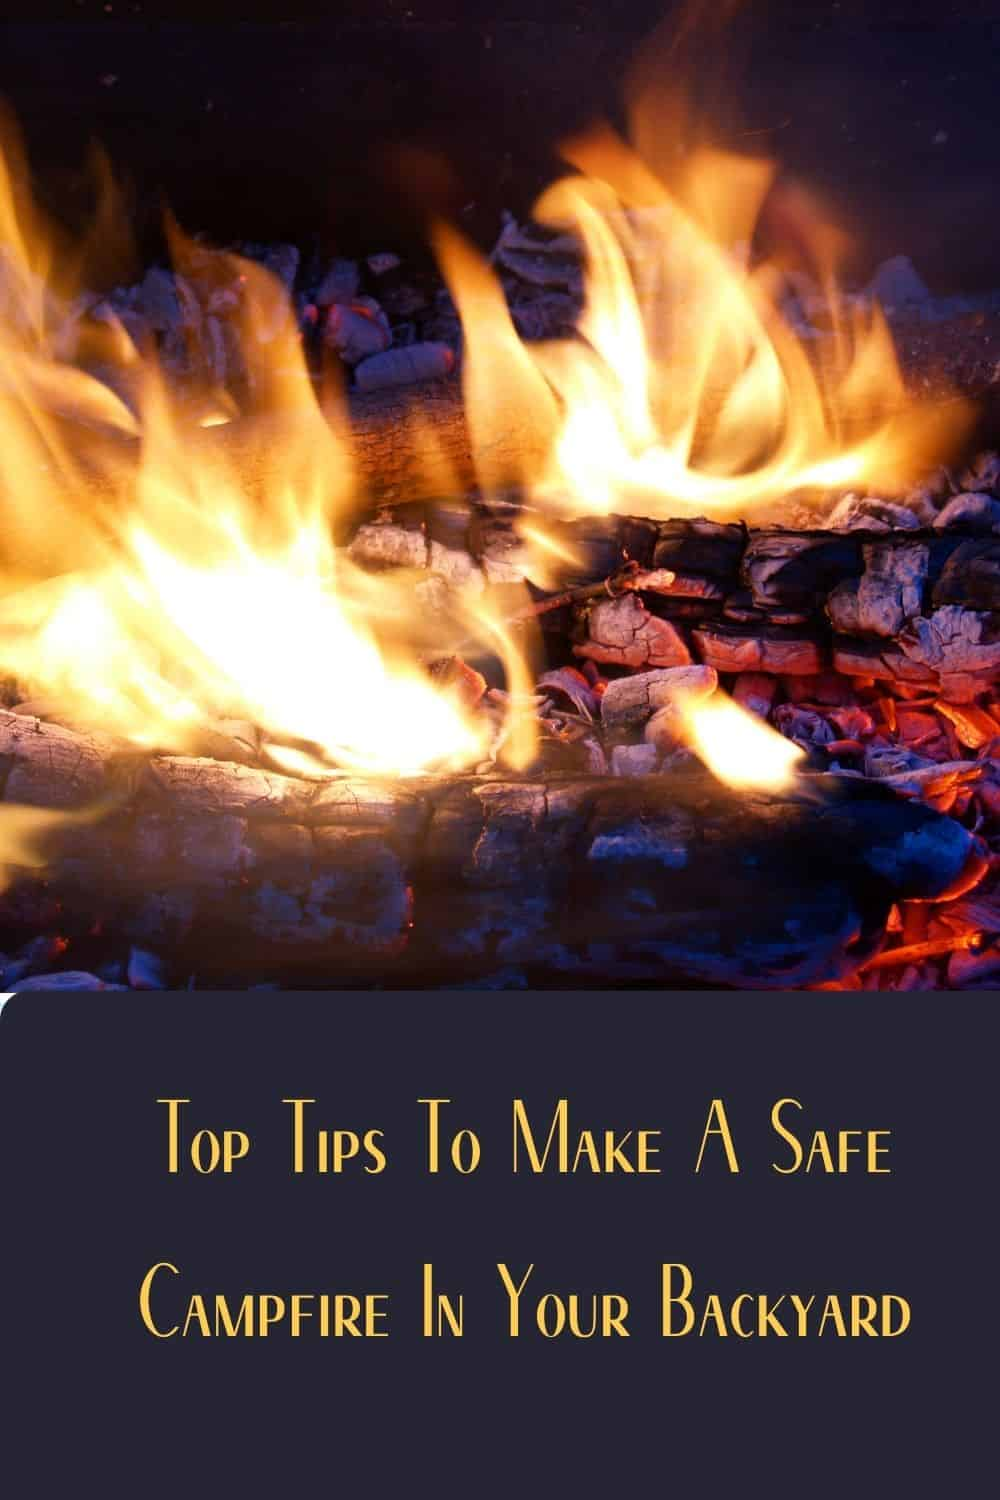 Pinterest image for Top Tips To Make A Safe Campfire In Your Backyard